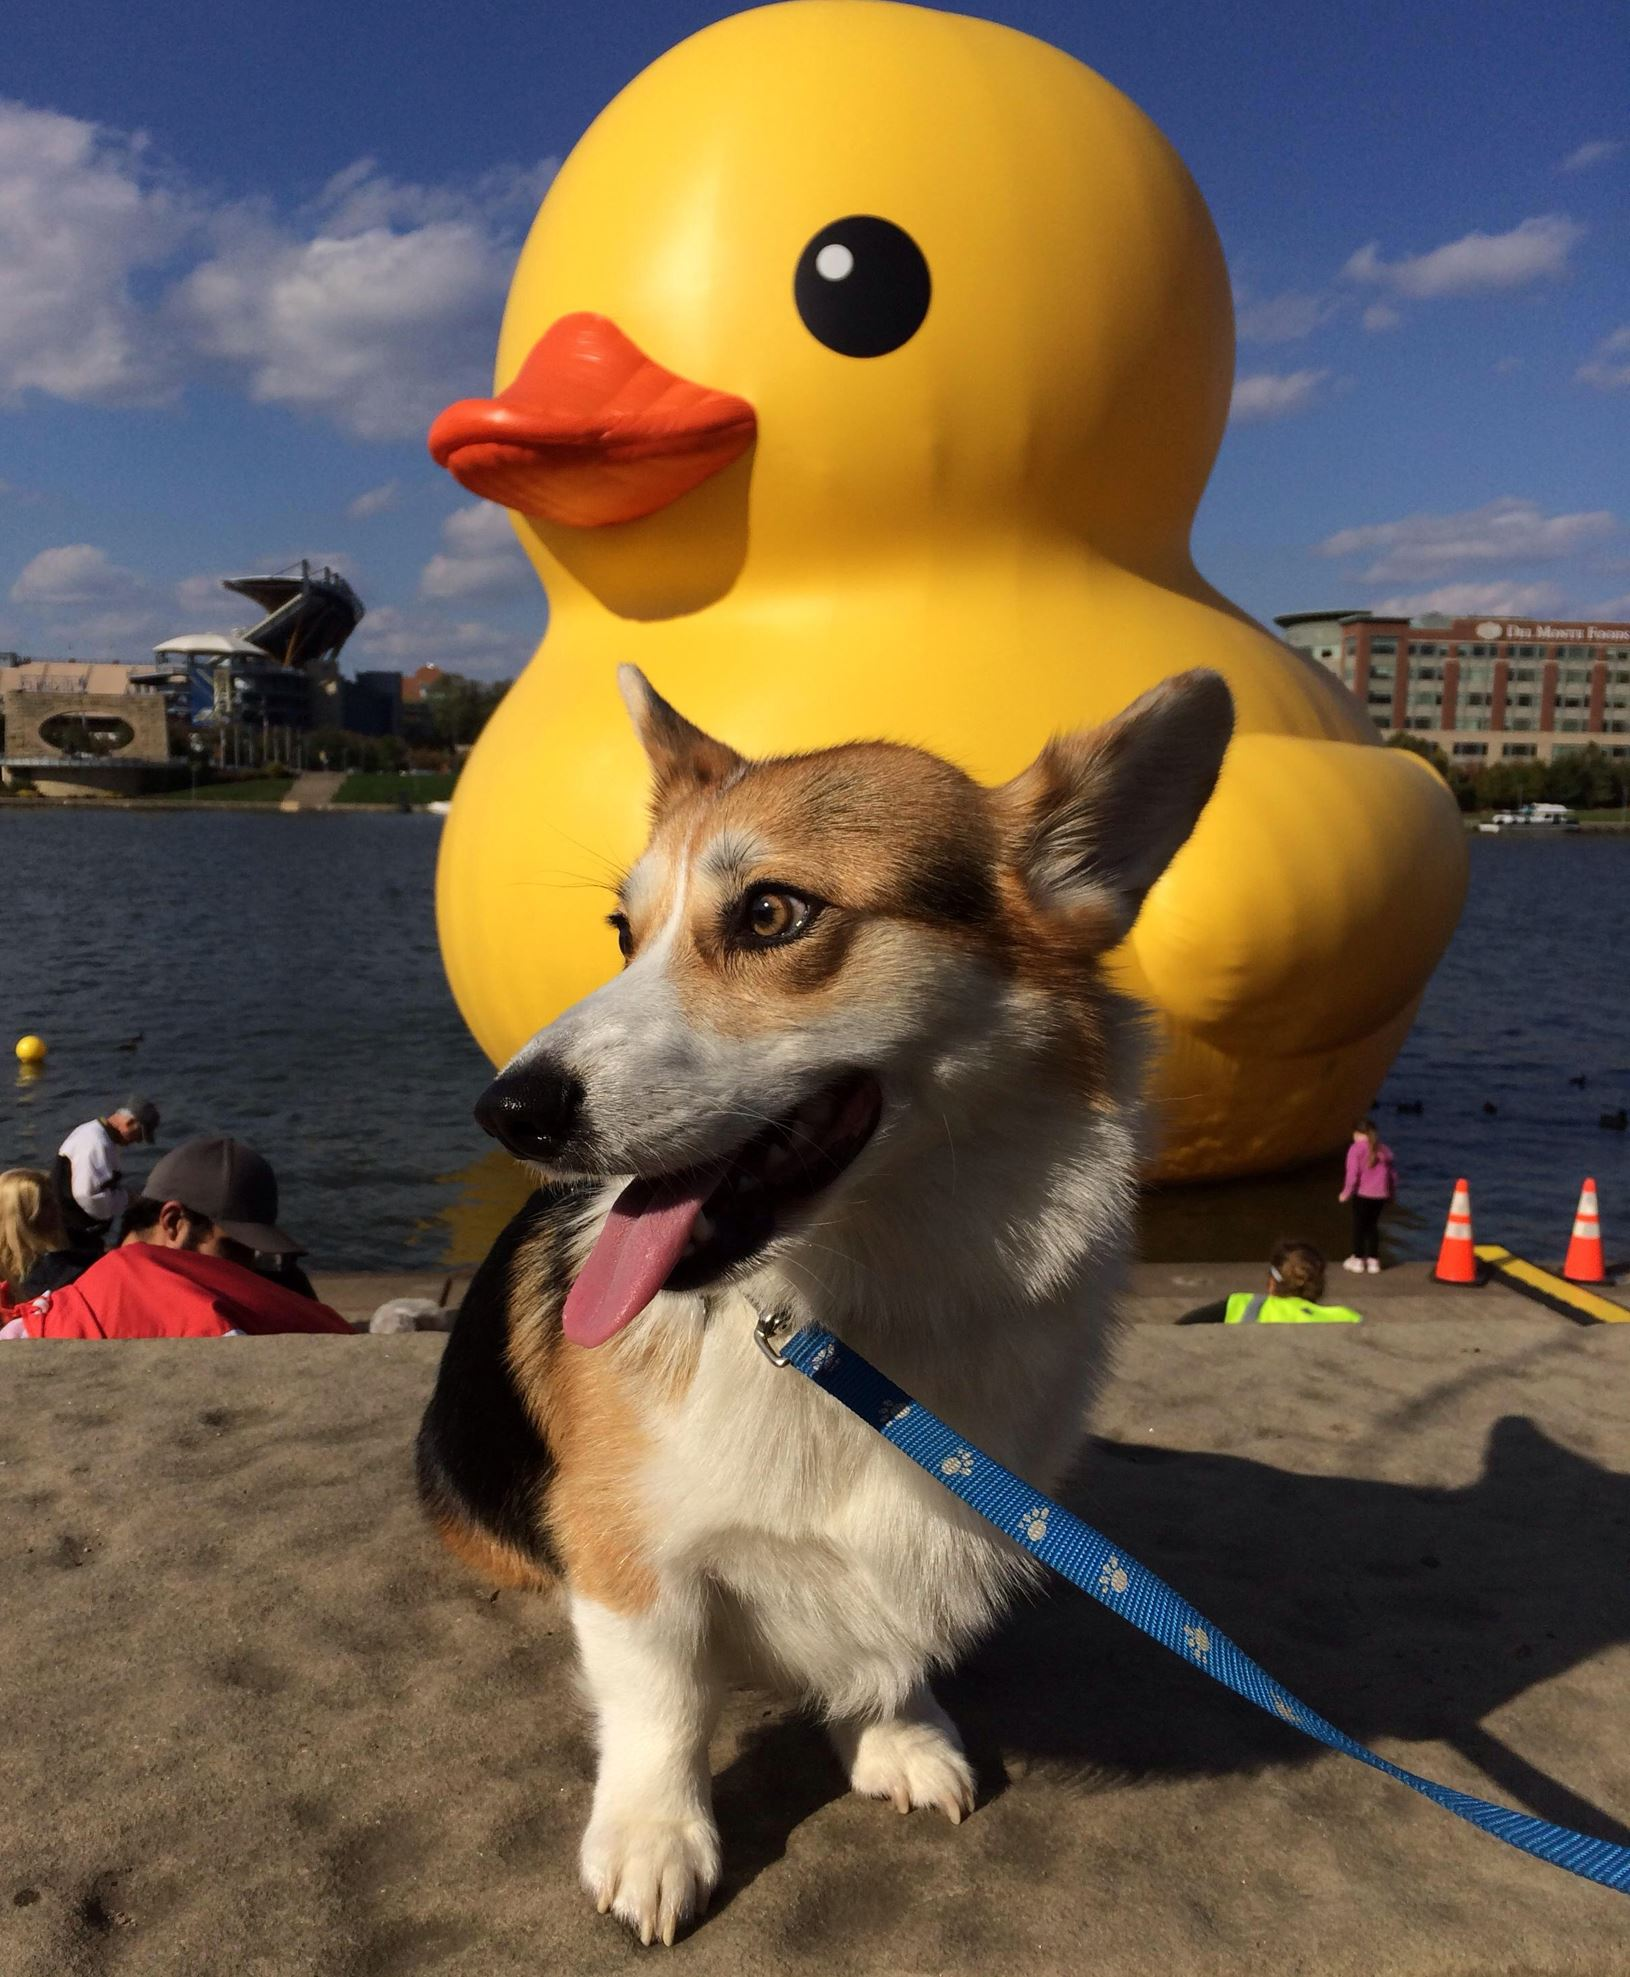 Yoshi Yoshi, a Corgi belonging to Scott Auth of Scott, foreground, visits the duck at the Point.